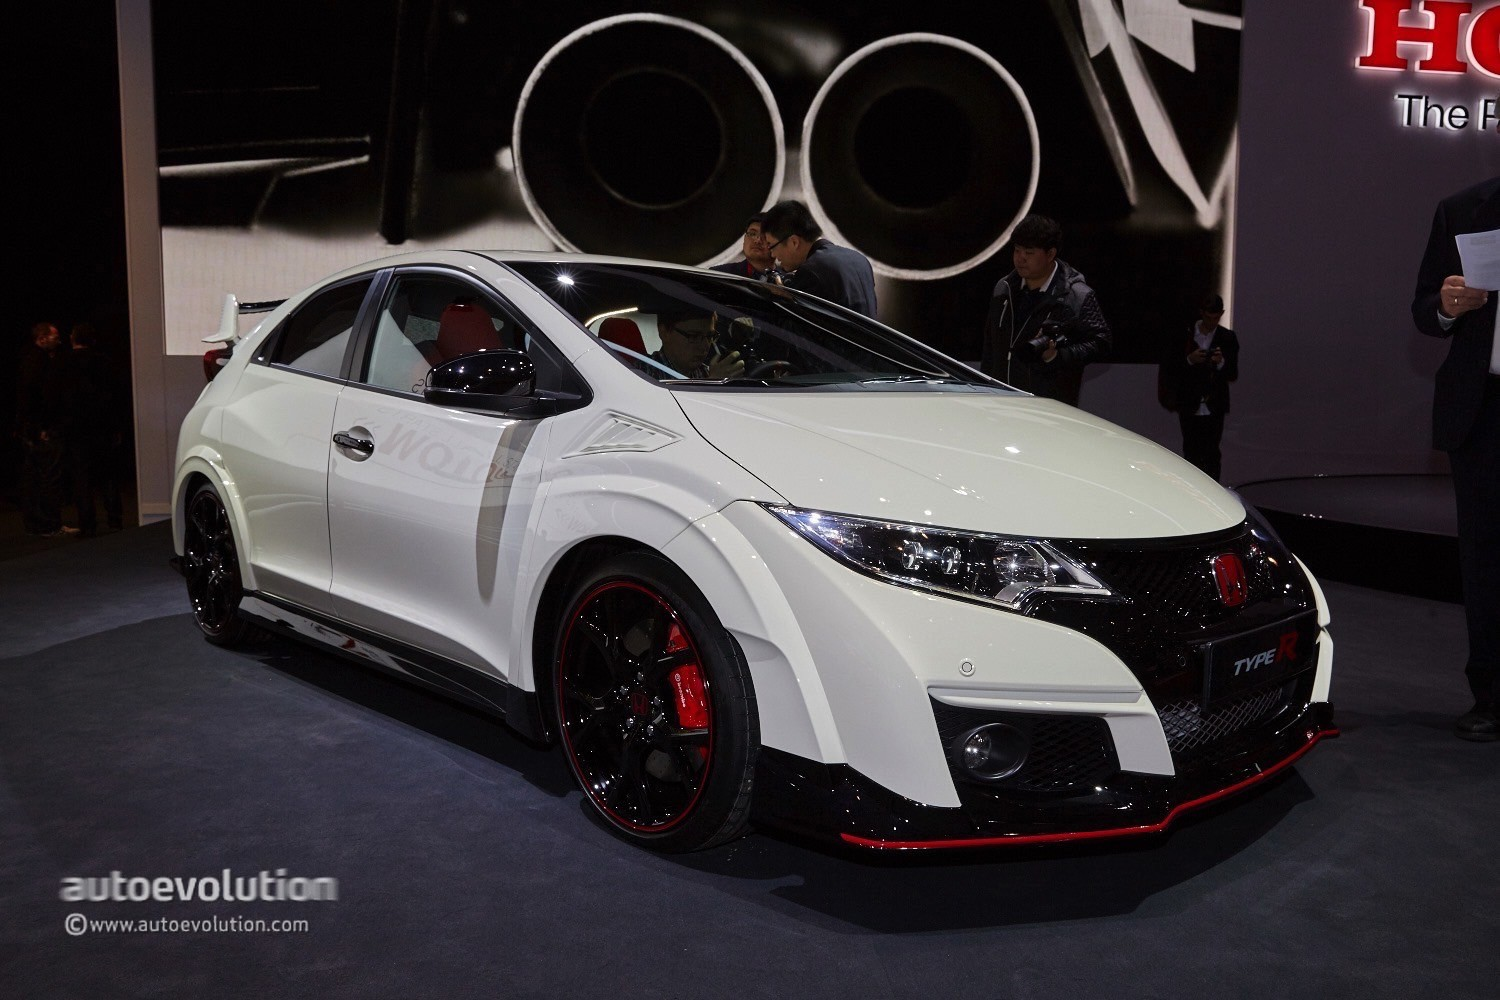 2015 Honda Civic Type R Acceleration Test 310 Hp 2 Liter